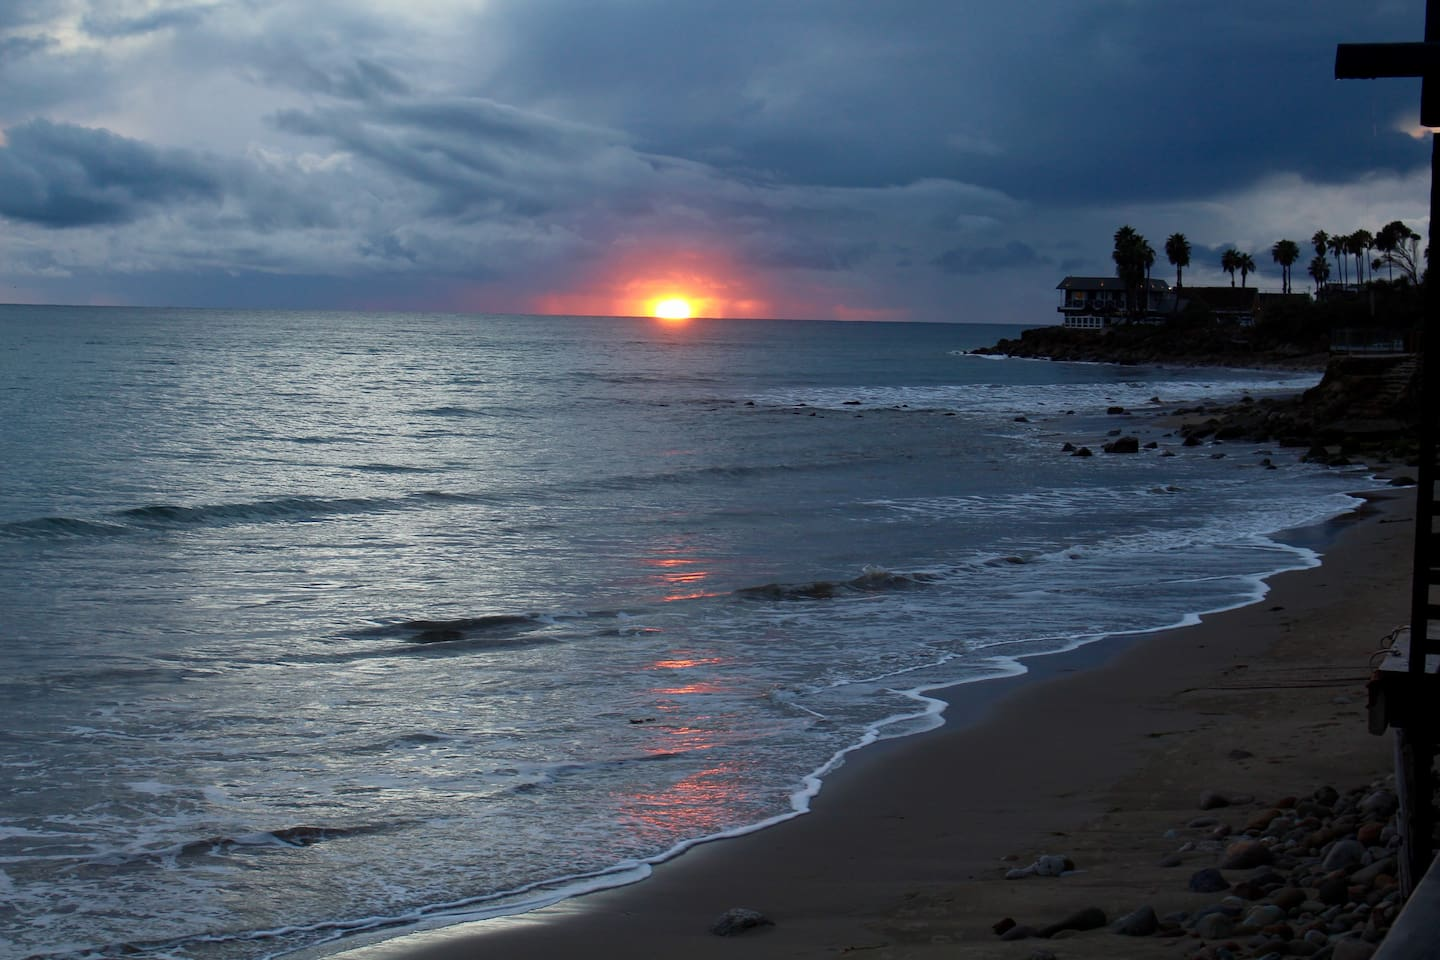 A beautiful sunset over paradise, Malibu beach.  Calm seas, the beach all to yourself, magic in the air with the serenity of the sea.